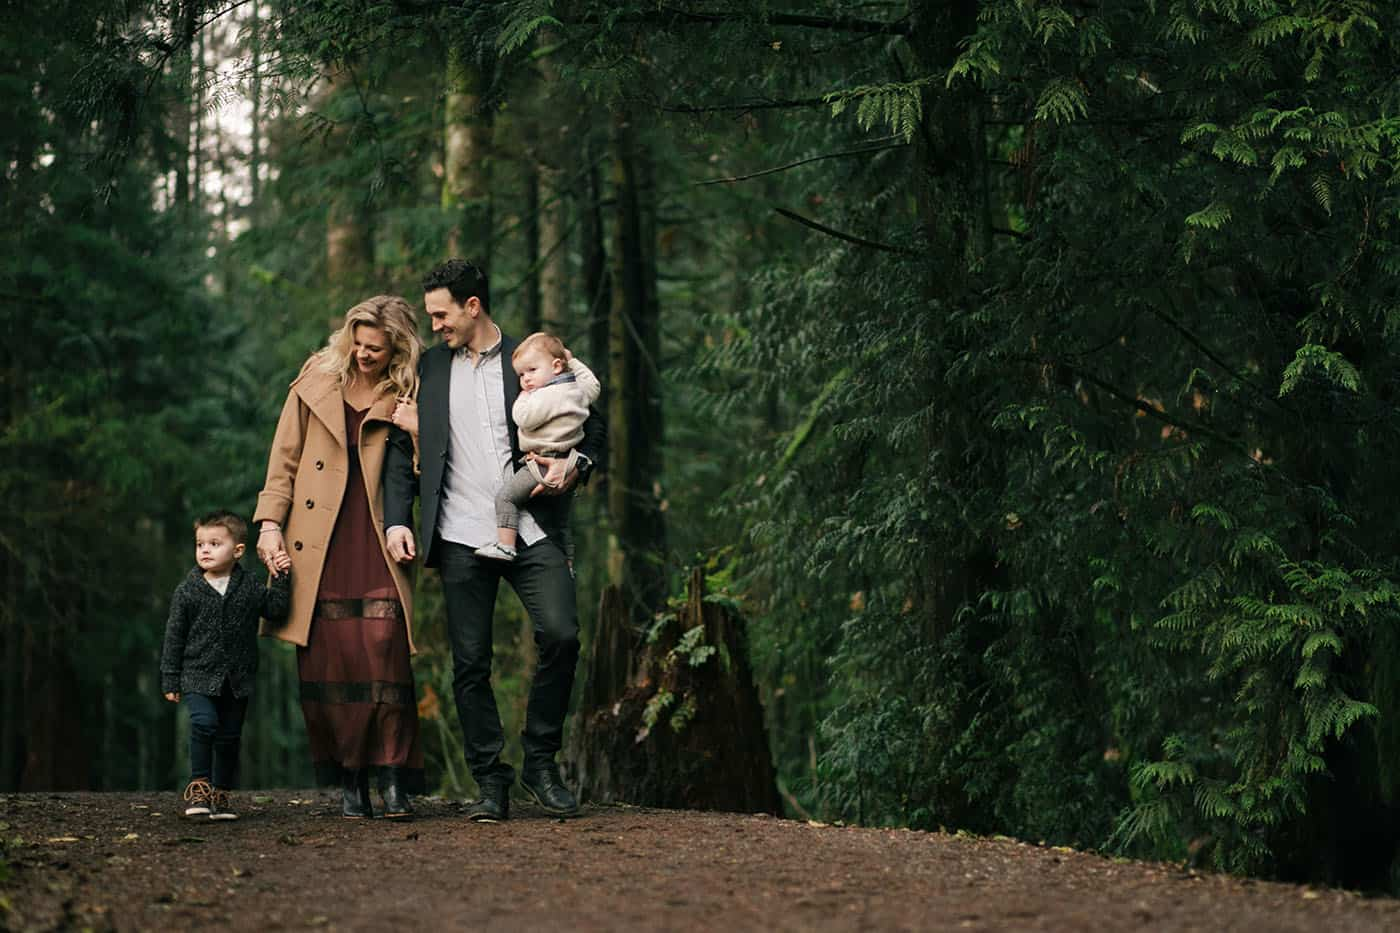 A husband and wife stroll through the woods with their two young sons in one of our favorite family portrait poses.